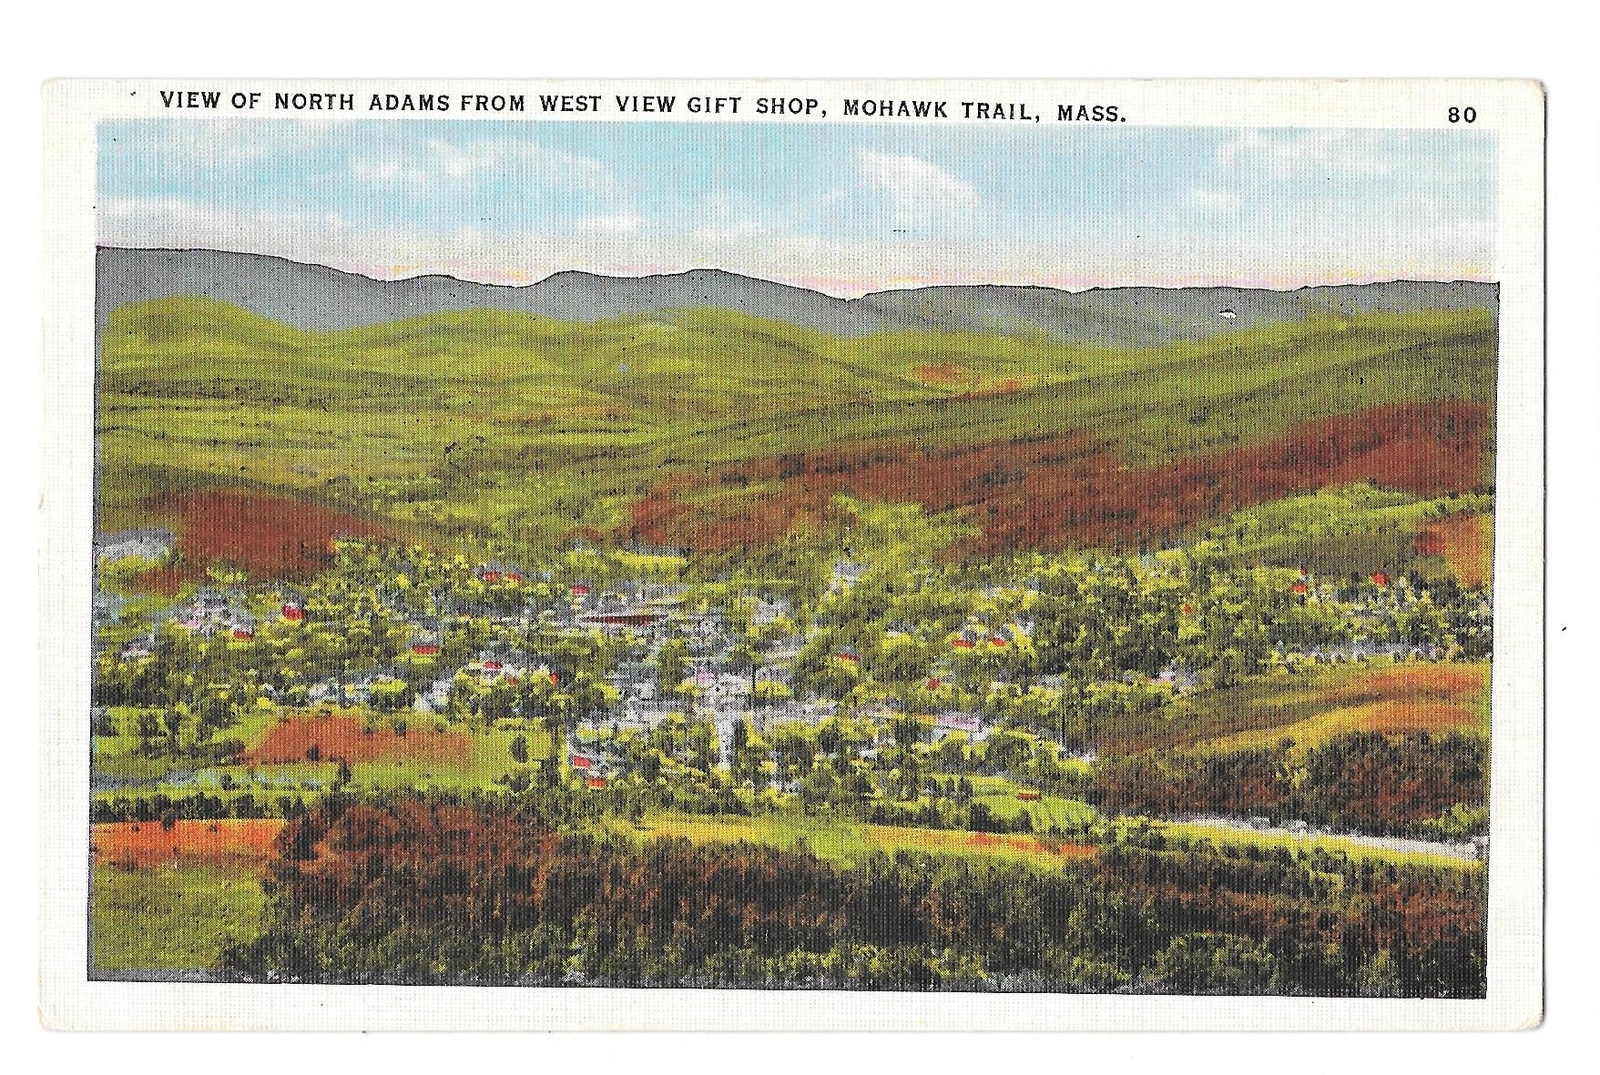 99 br 1925 1bx ma mohawk trail view of north adams